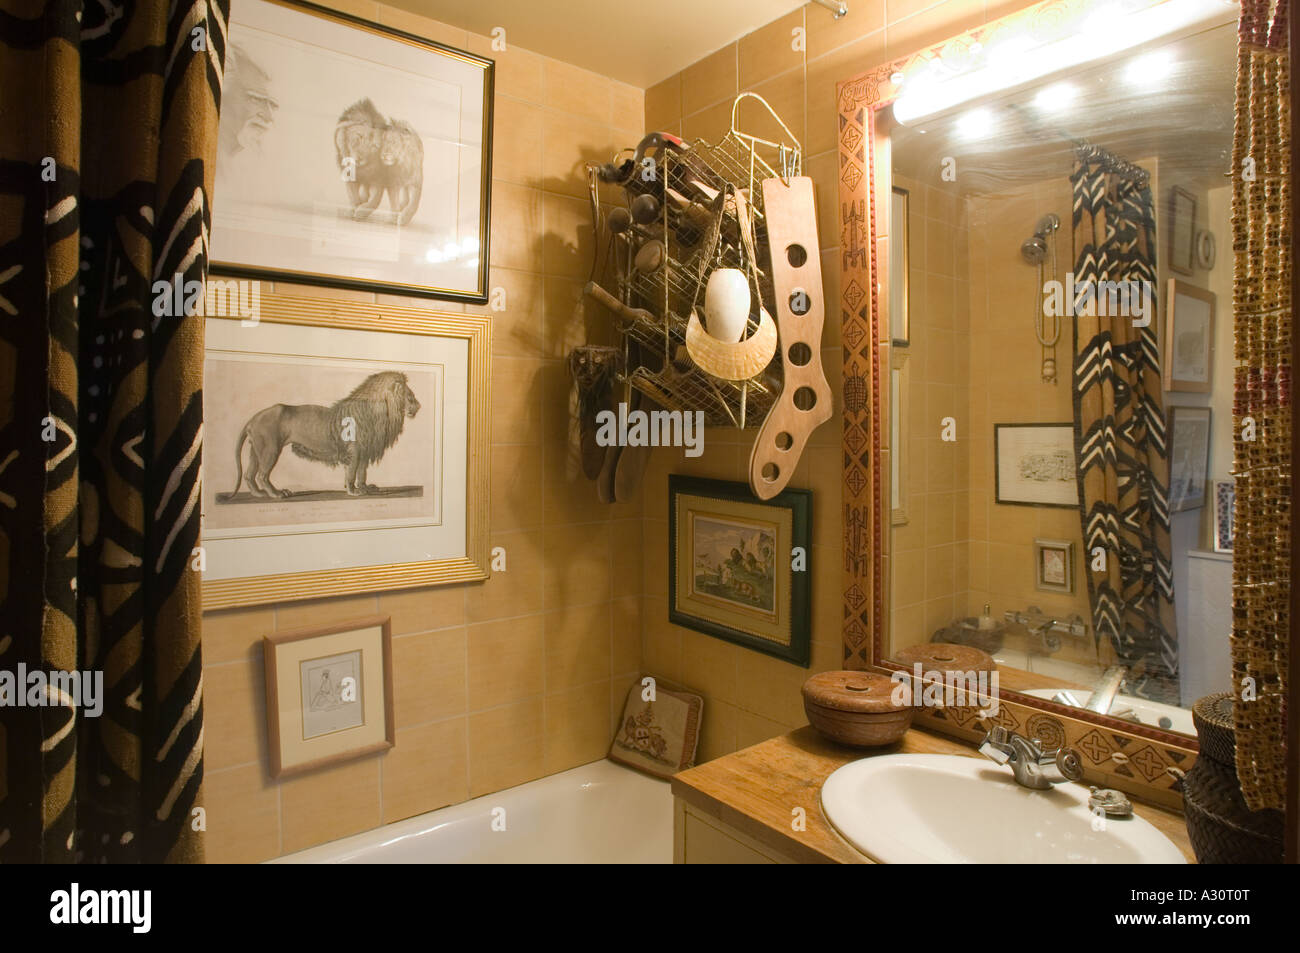 Cosy bathroom with decorative artifacts - Stock Image